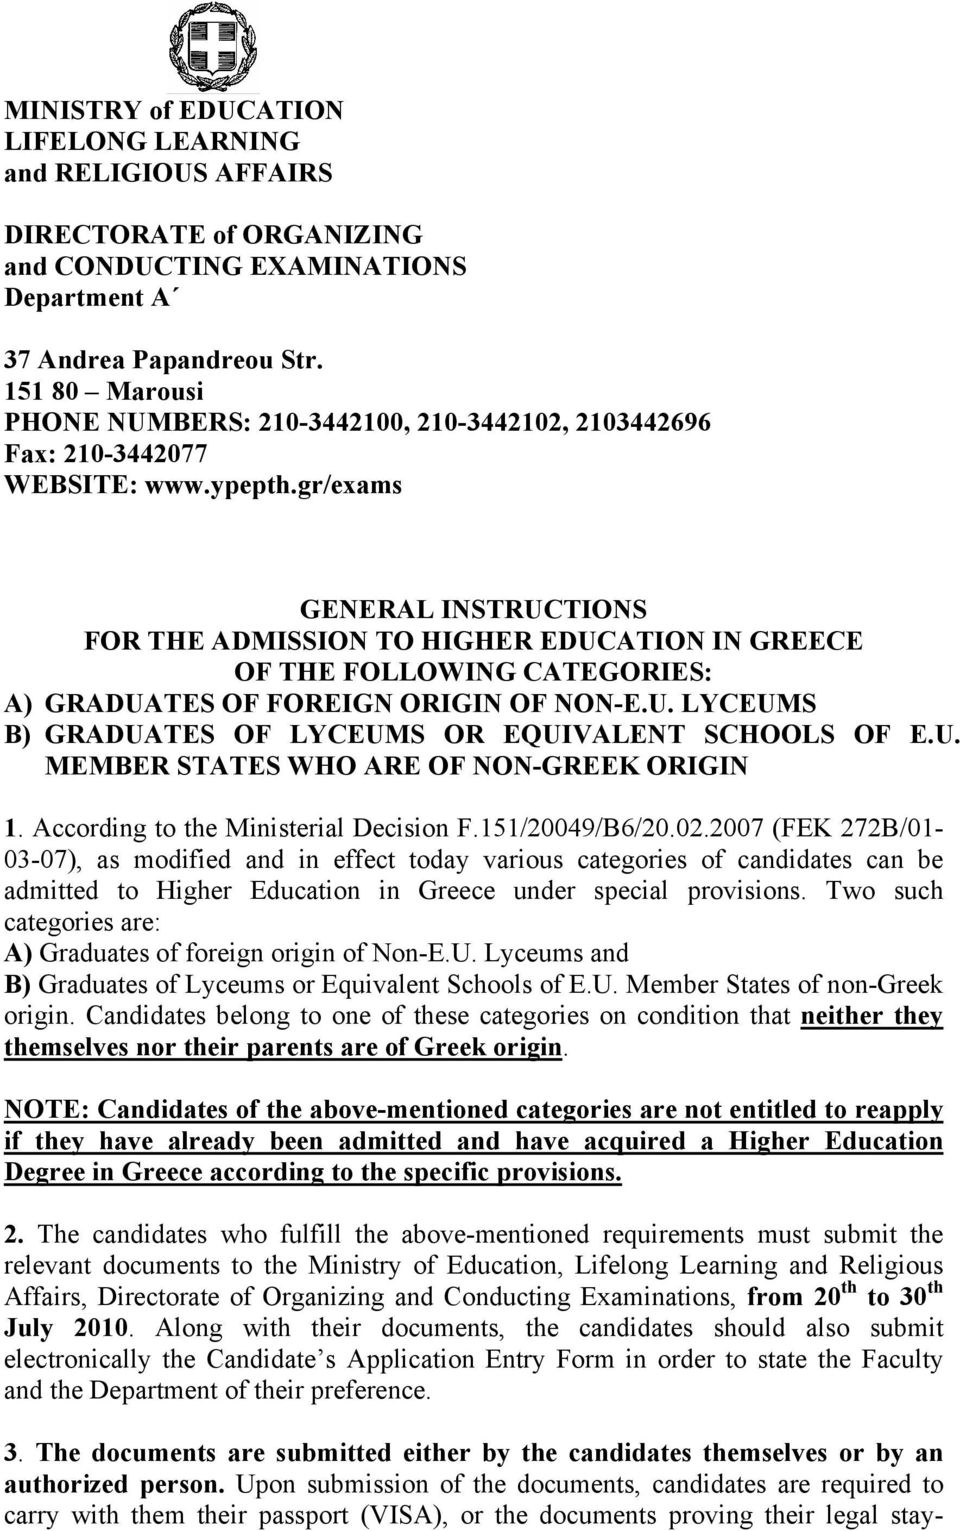 gr/exams GENERAL INSTRUCTIONS FOR THE ADMISSION TO HIGHER EDUCATION IN GREECE OF THE FOLLOWING CATEGORIES: A) GRADUATES OF FOREIGN ORIGIN OF NON-E.U. LYCEUMS B) GRADUATES OF LYCEUMS OR EQUIVALENT SCHOOLS OF E.